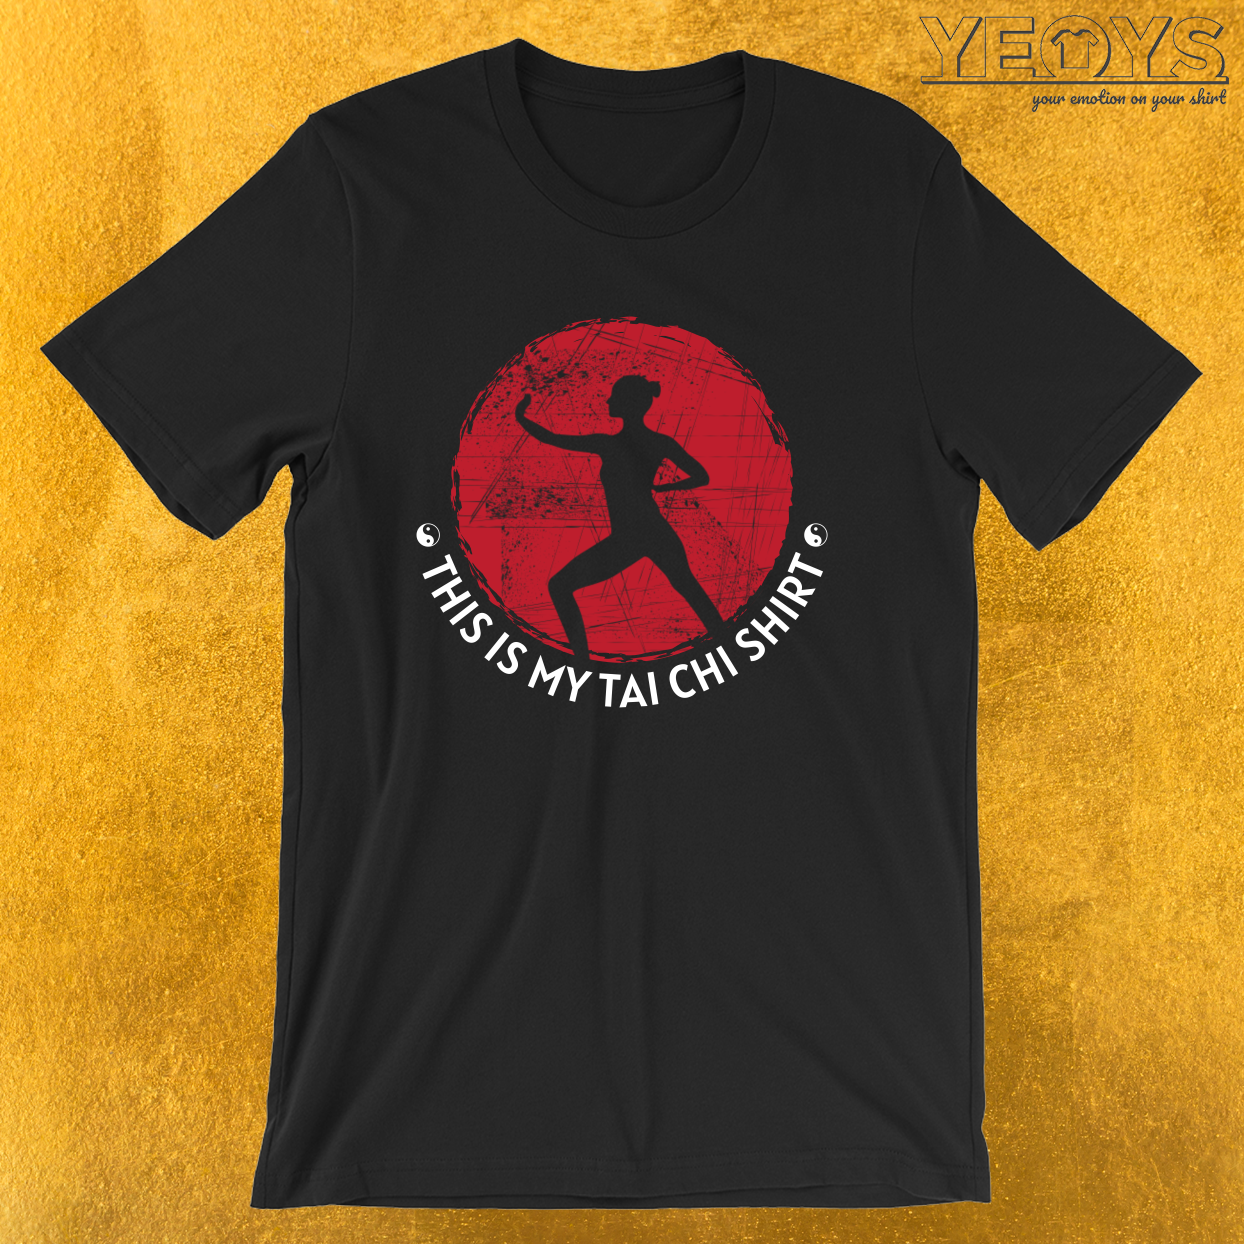 This Is My Tai Chi Shirt – Tai Chi Instruction Tee